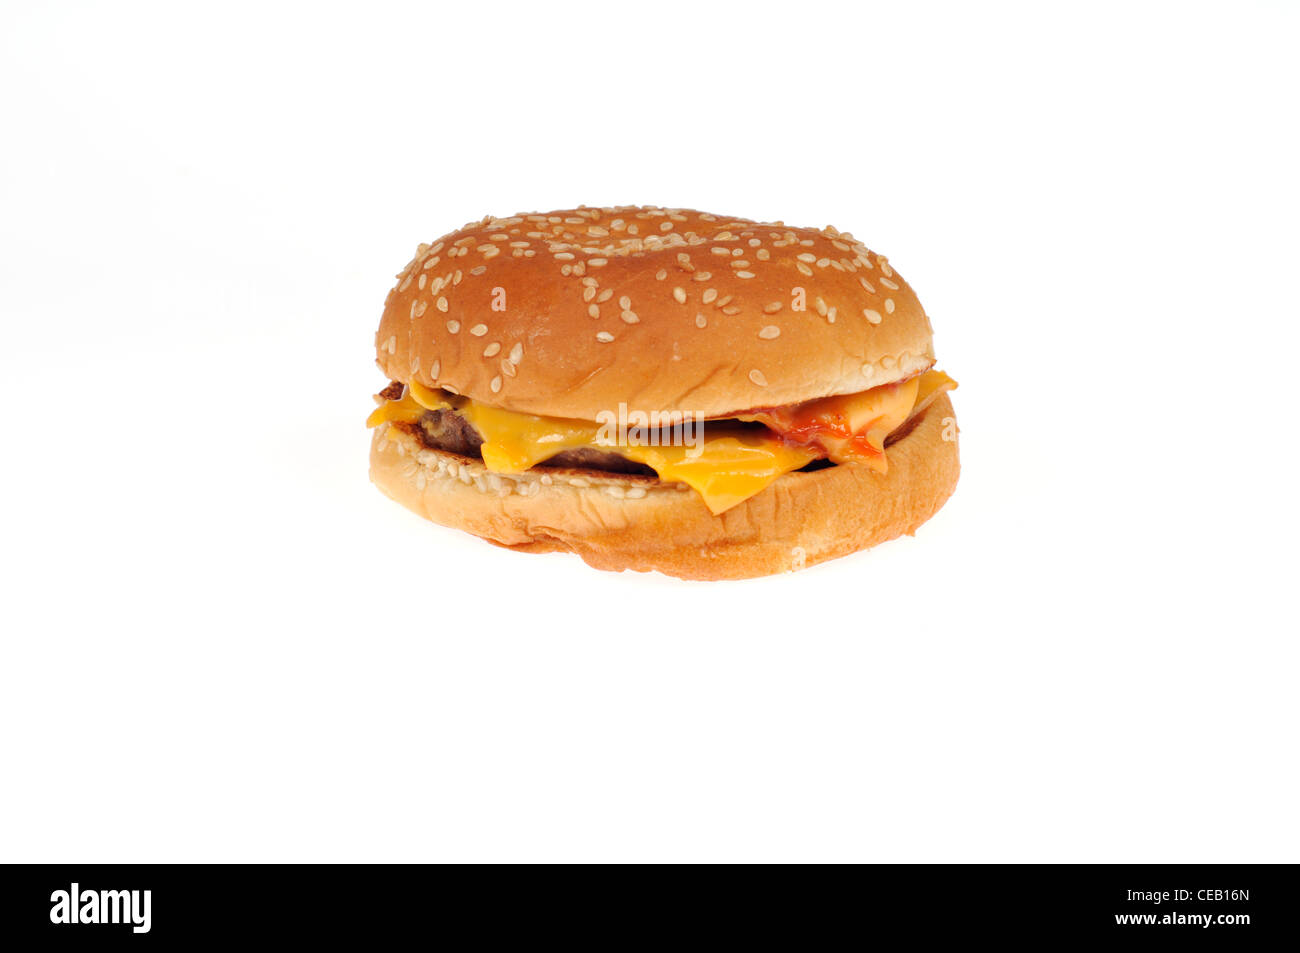 Burger King double cheeseburger on white background cutout USA. - Stock Image